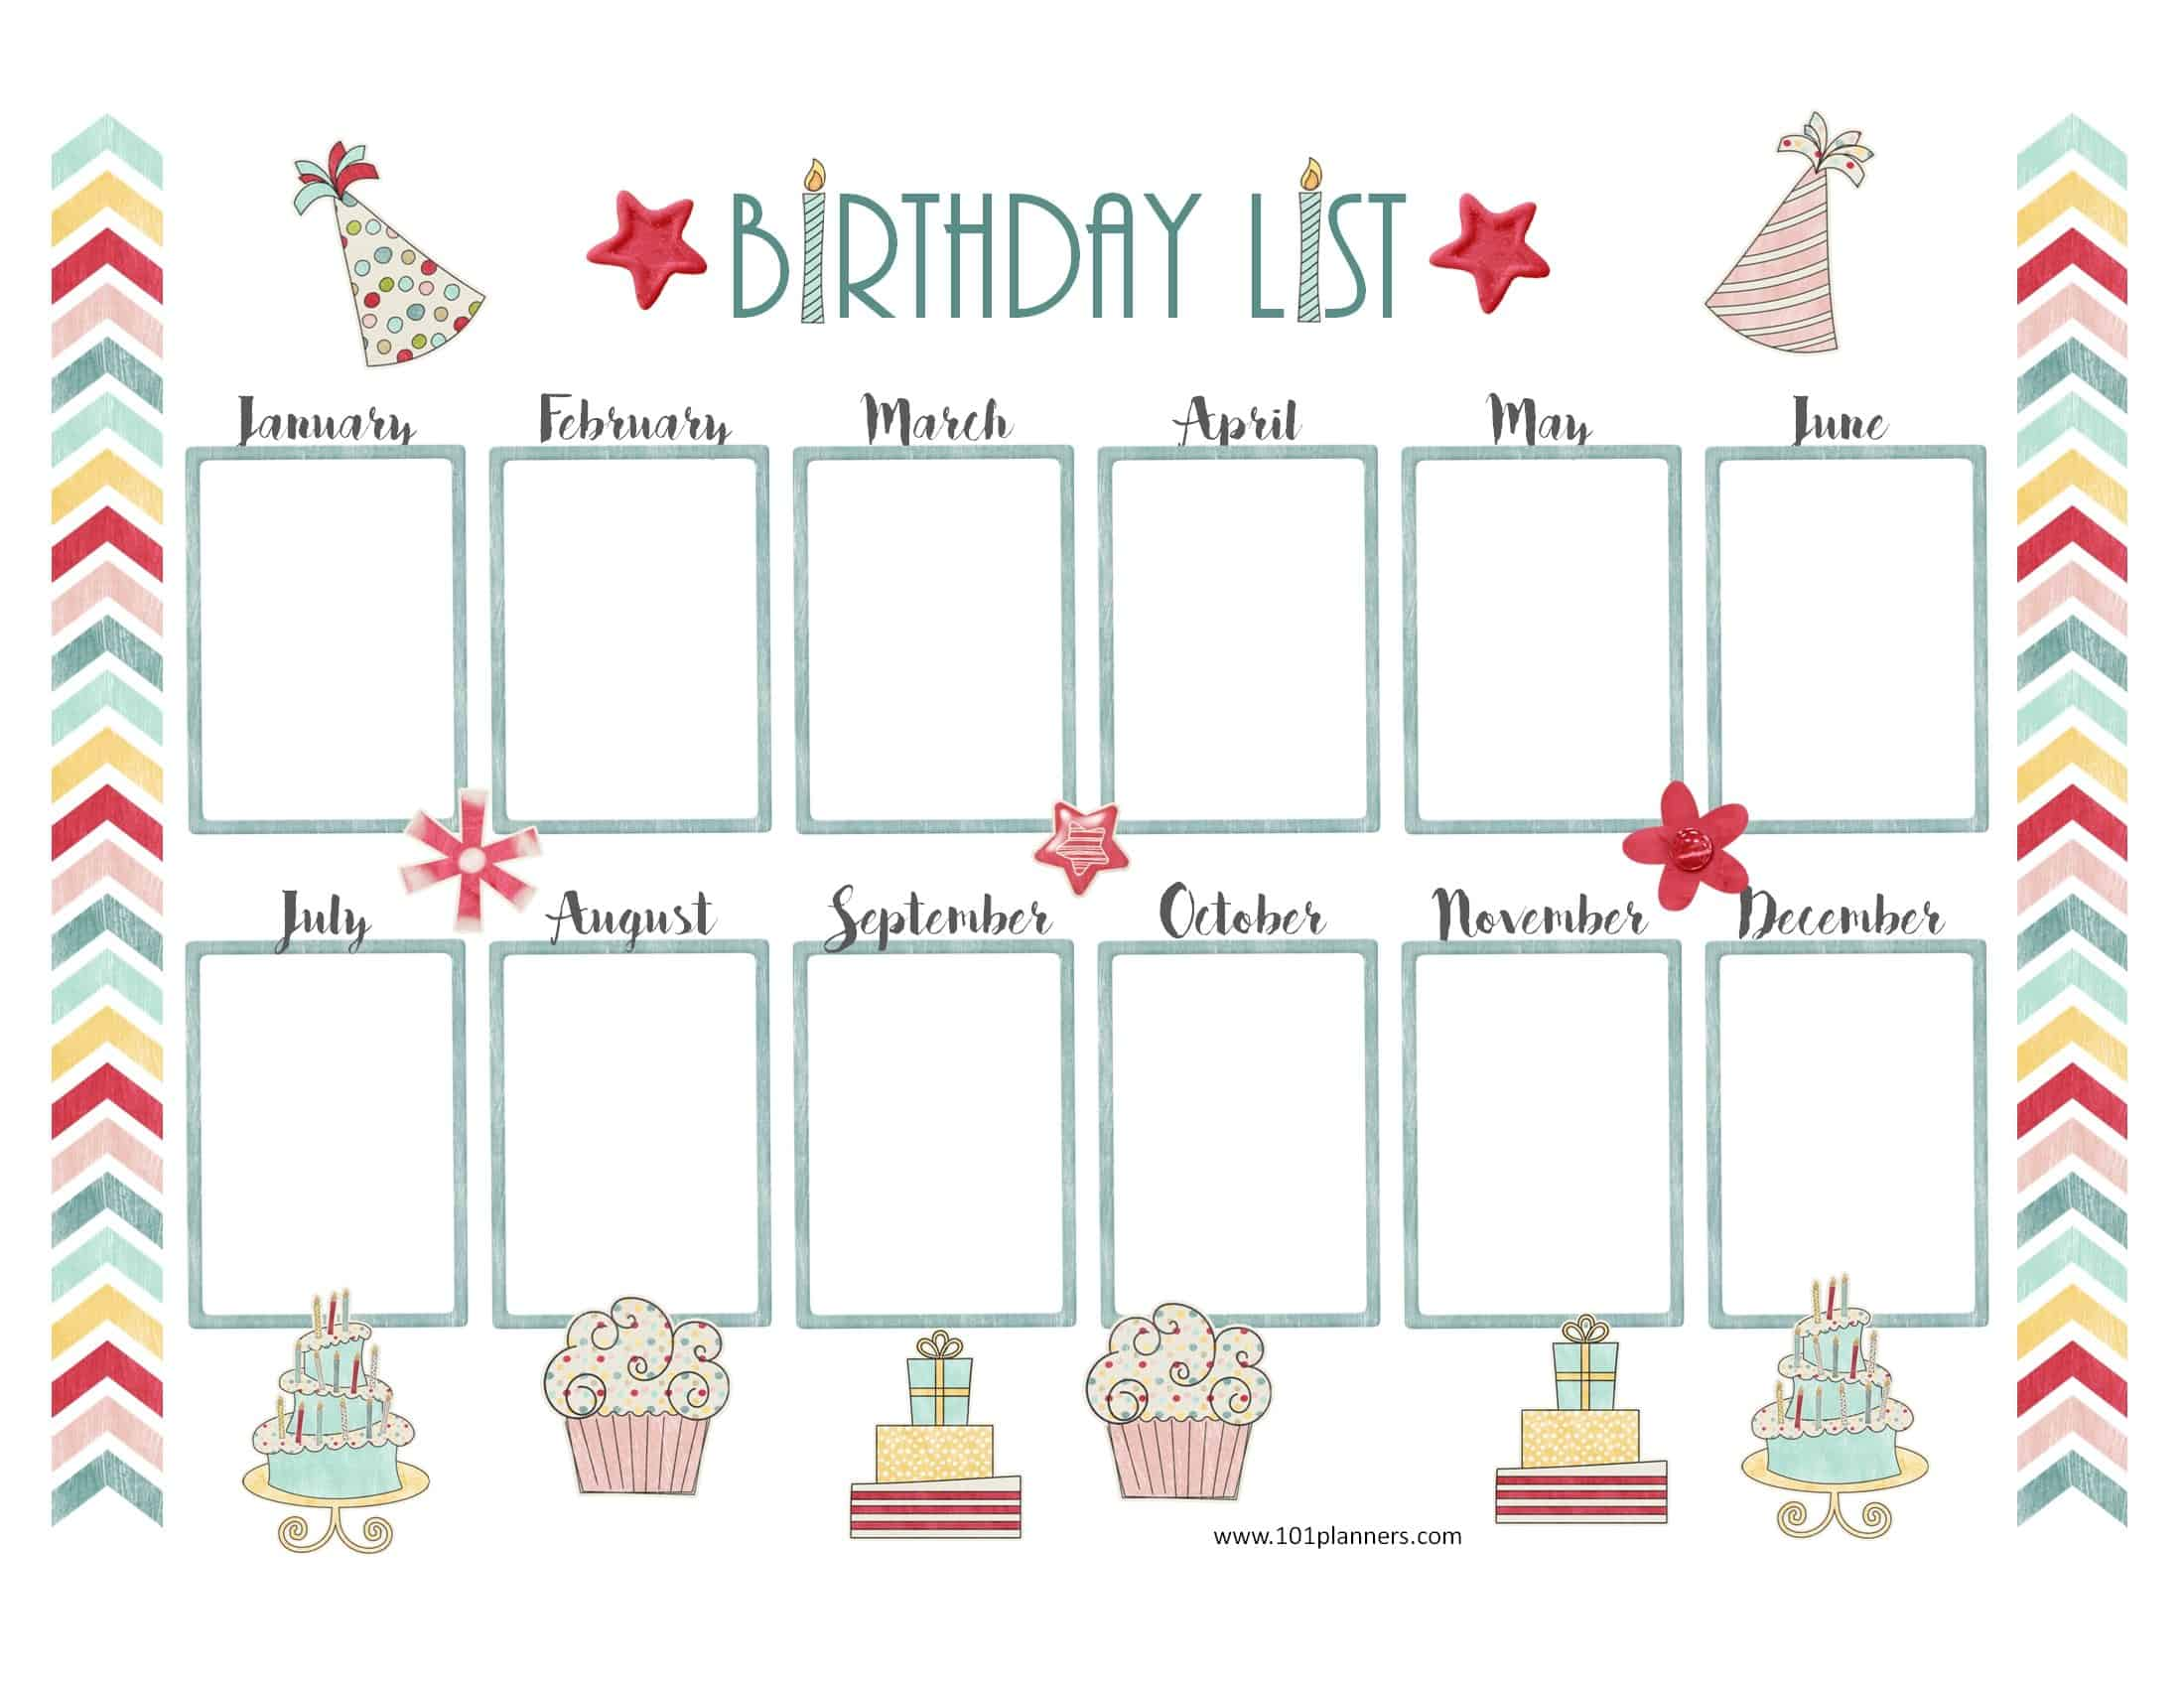 Free Birthday Calendar | Customize Online & Print at Home